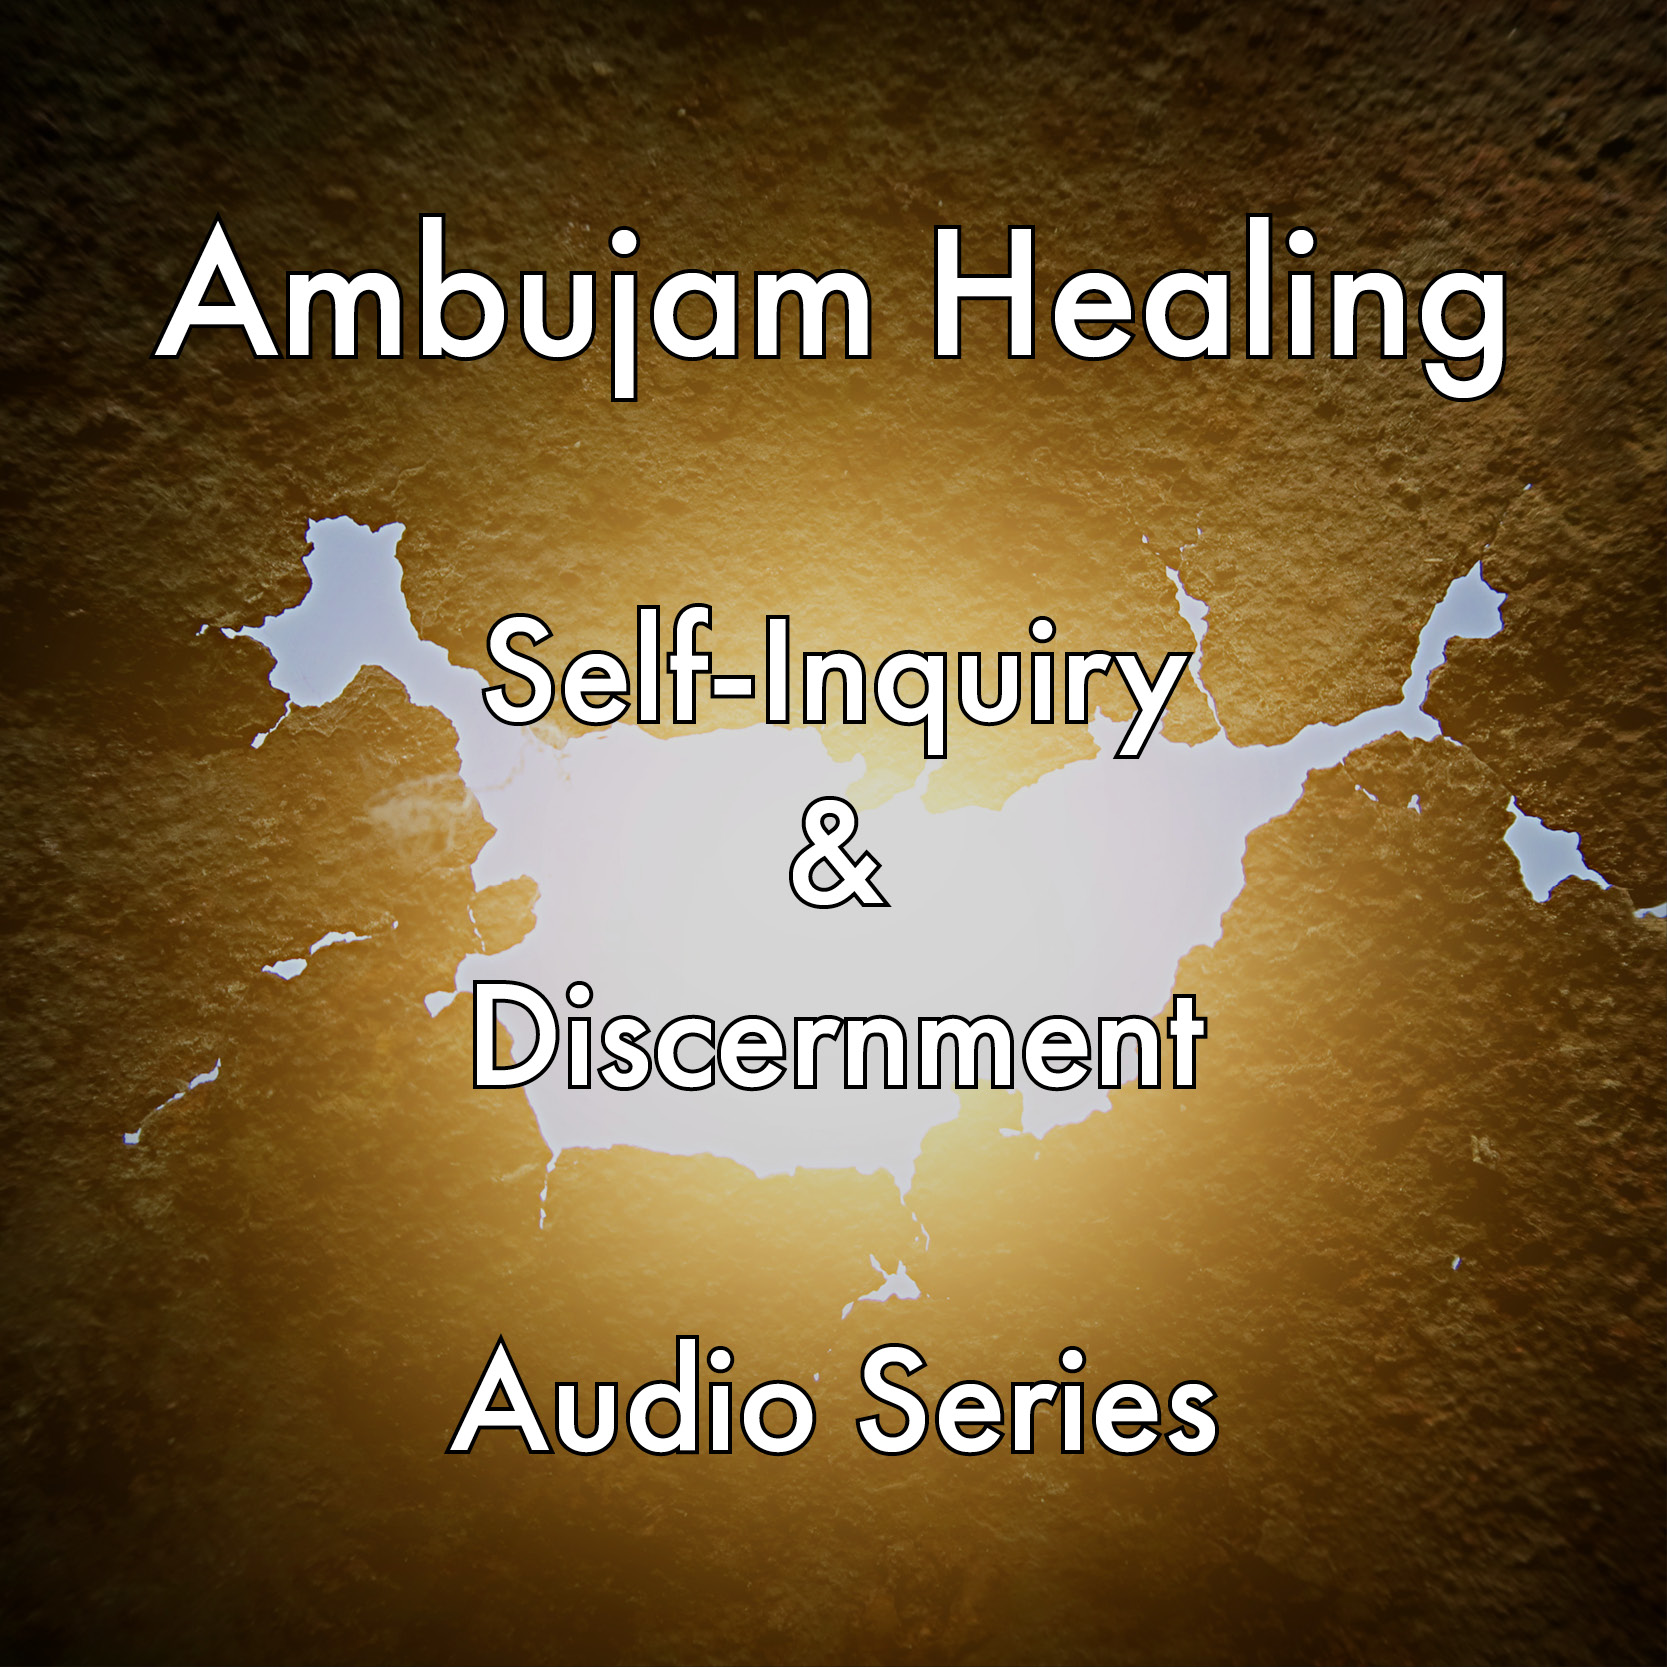 Self-Inquiry and Discernment Audio Series 2018.jpg